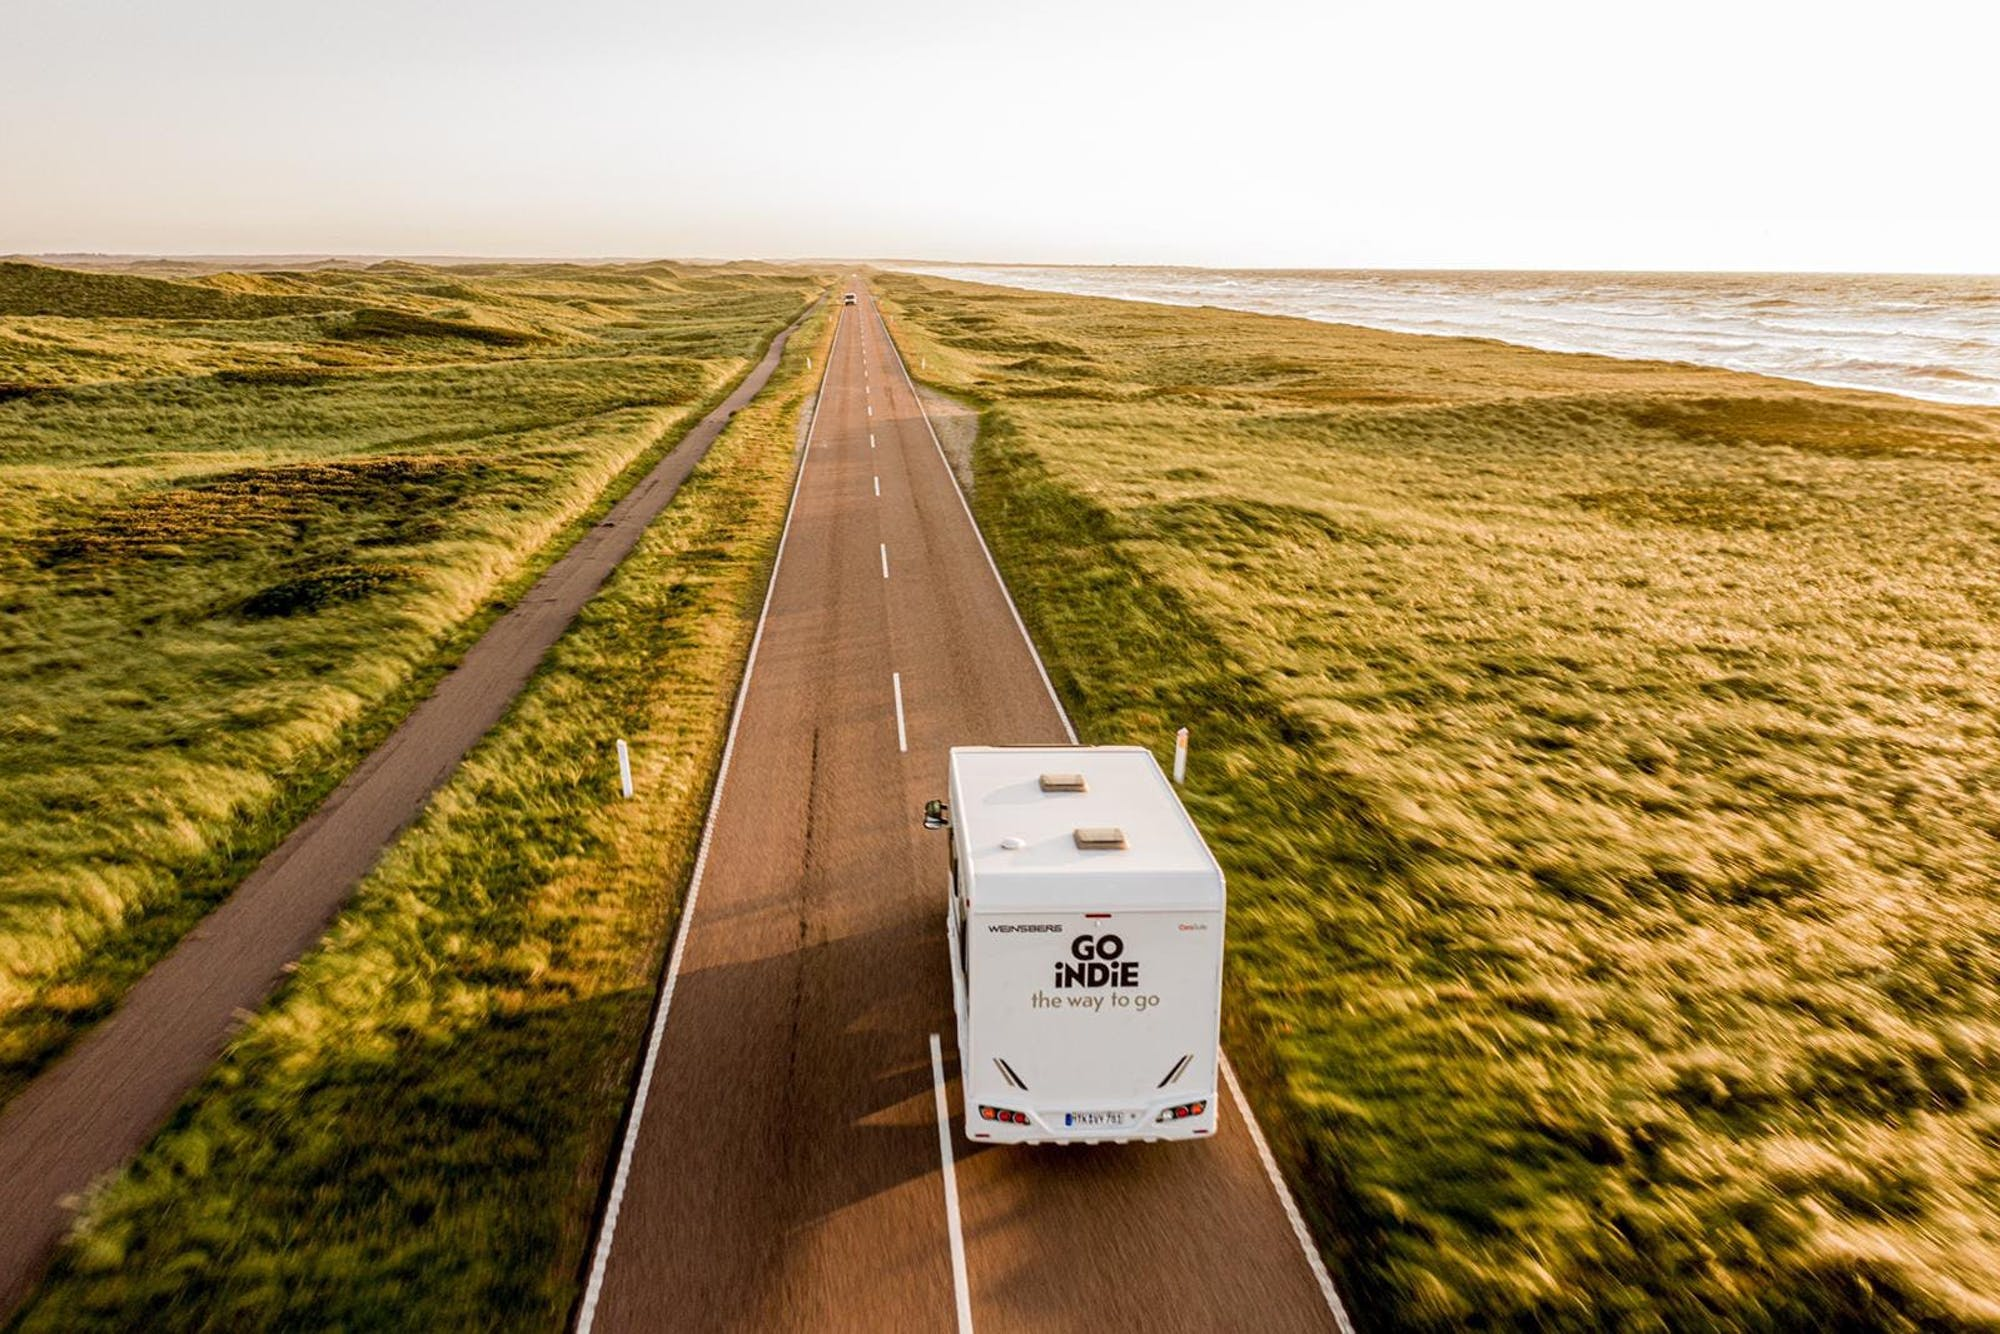 Drone view of the Atlas campervan on the road